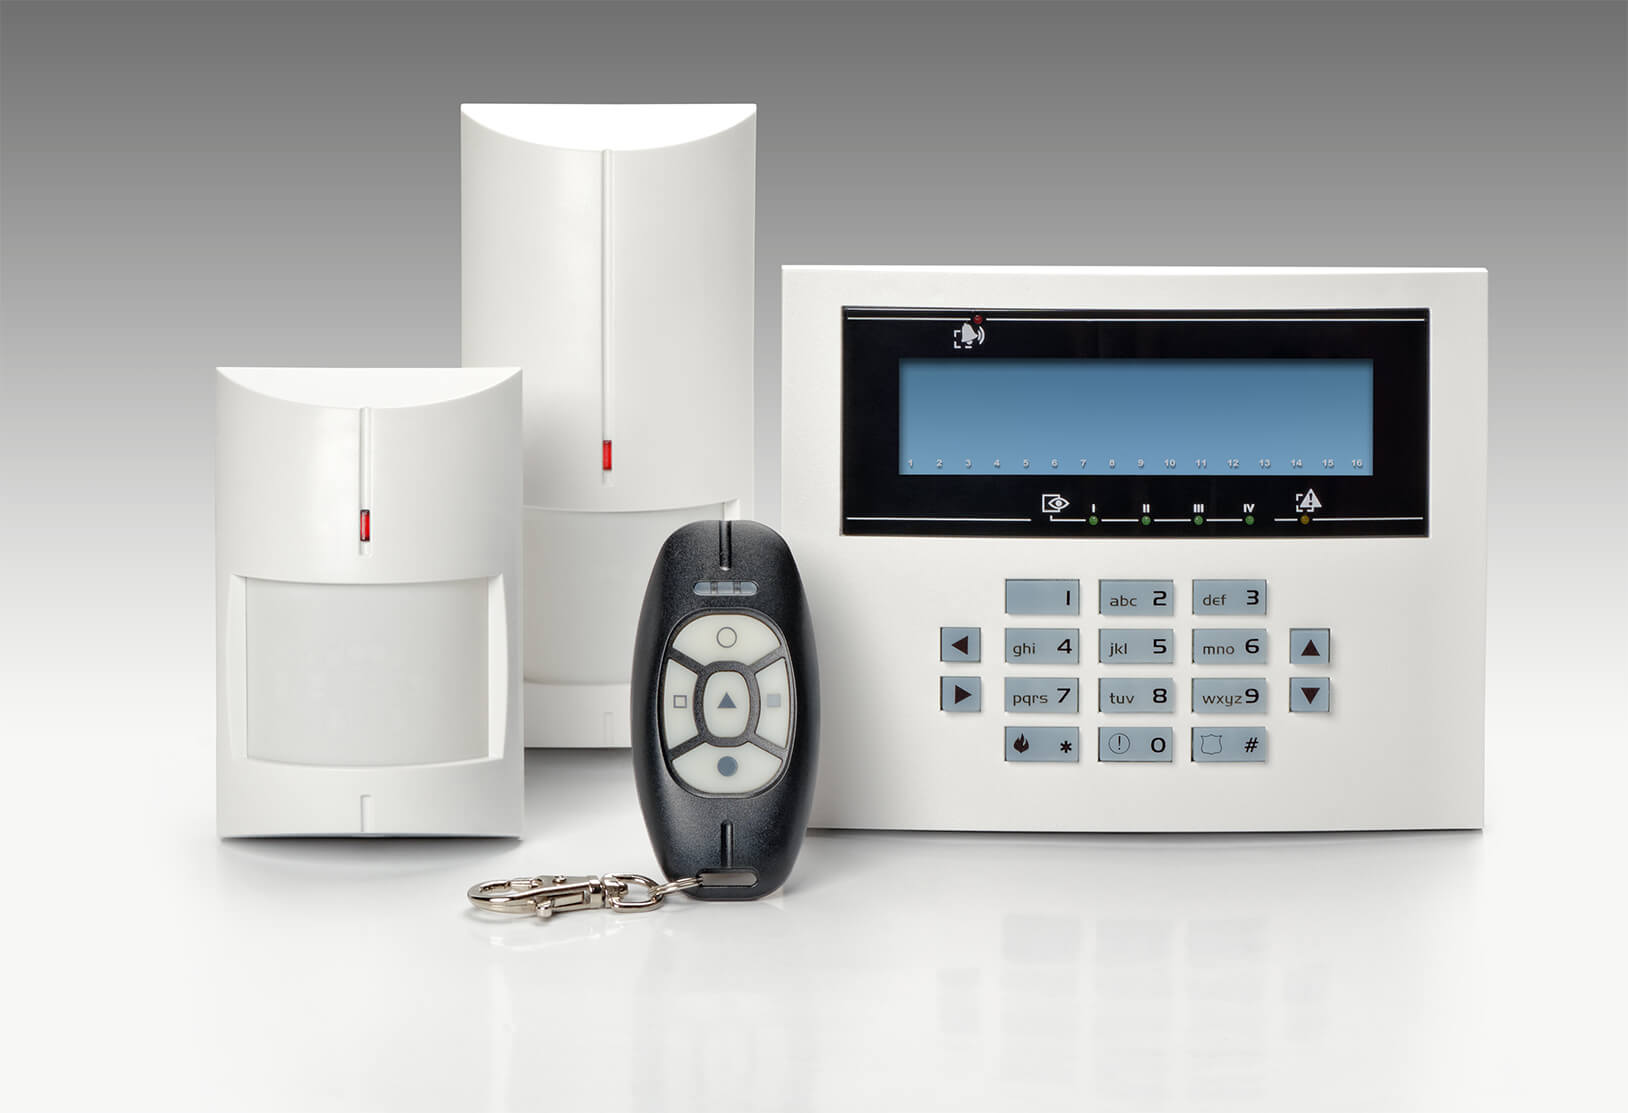 Business & Residential NACOSS Approved Burglar Alarms In London - Local London security company.Call 02078872244 - Dedicated to Safety & Security. Companies, shops and homes ..